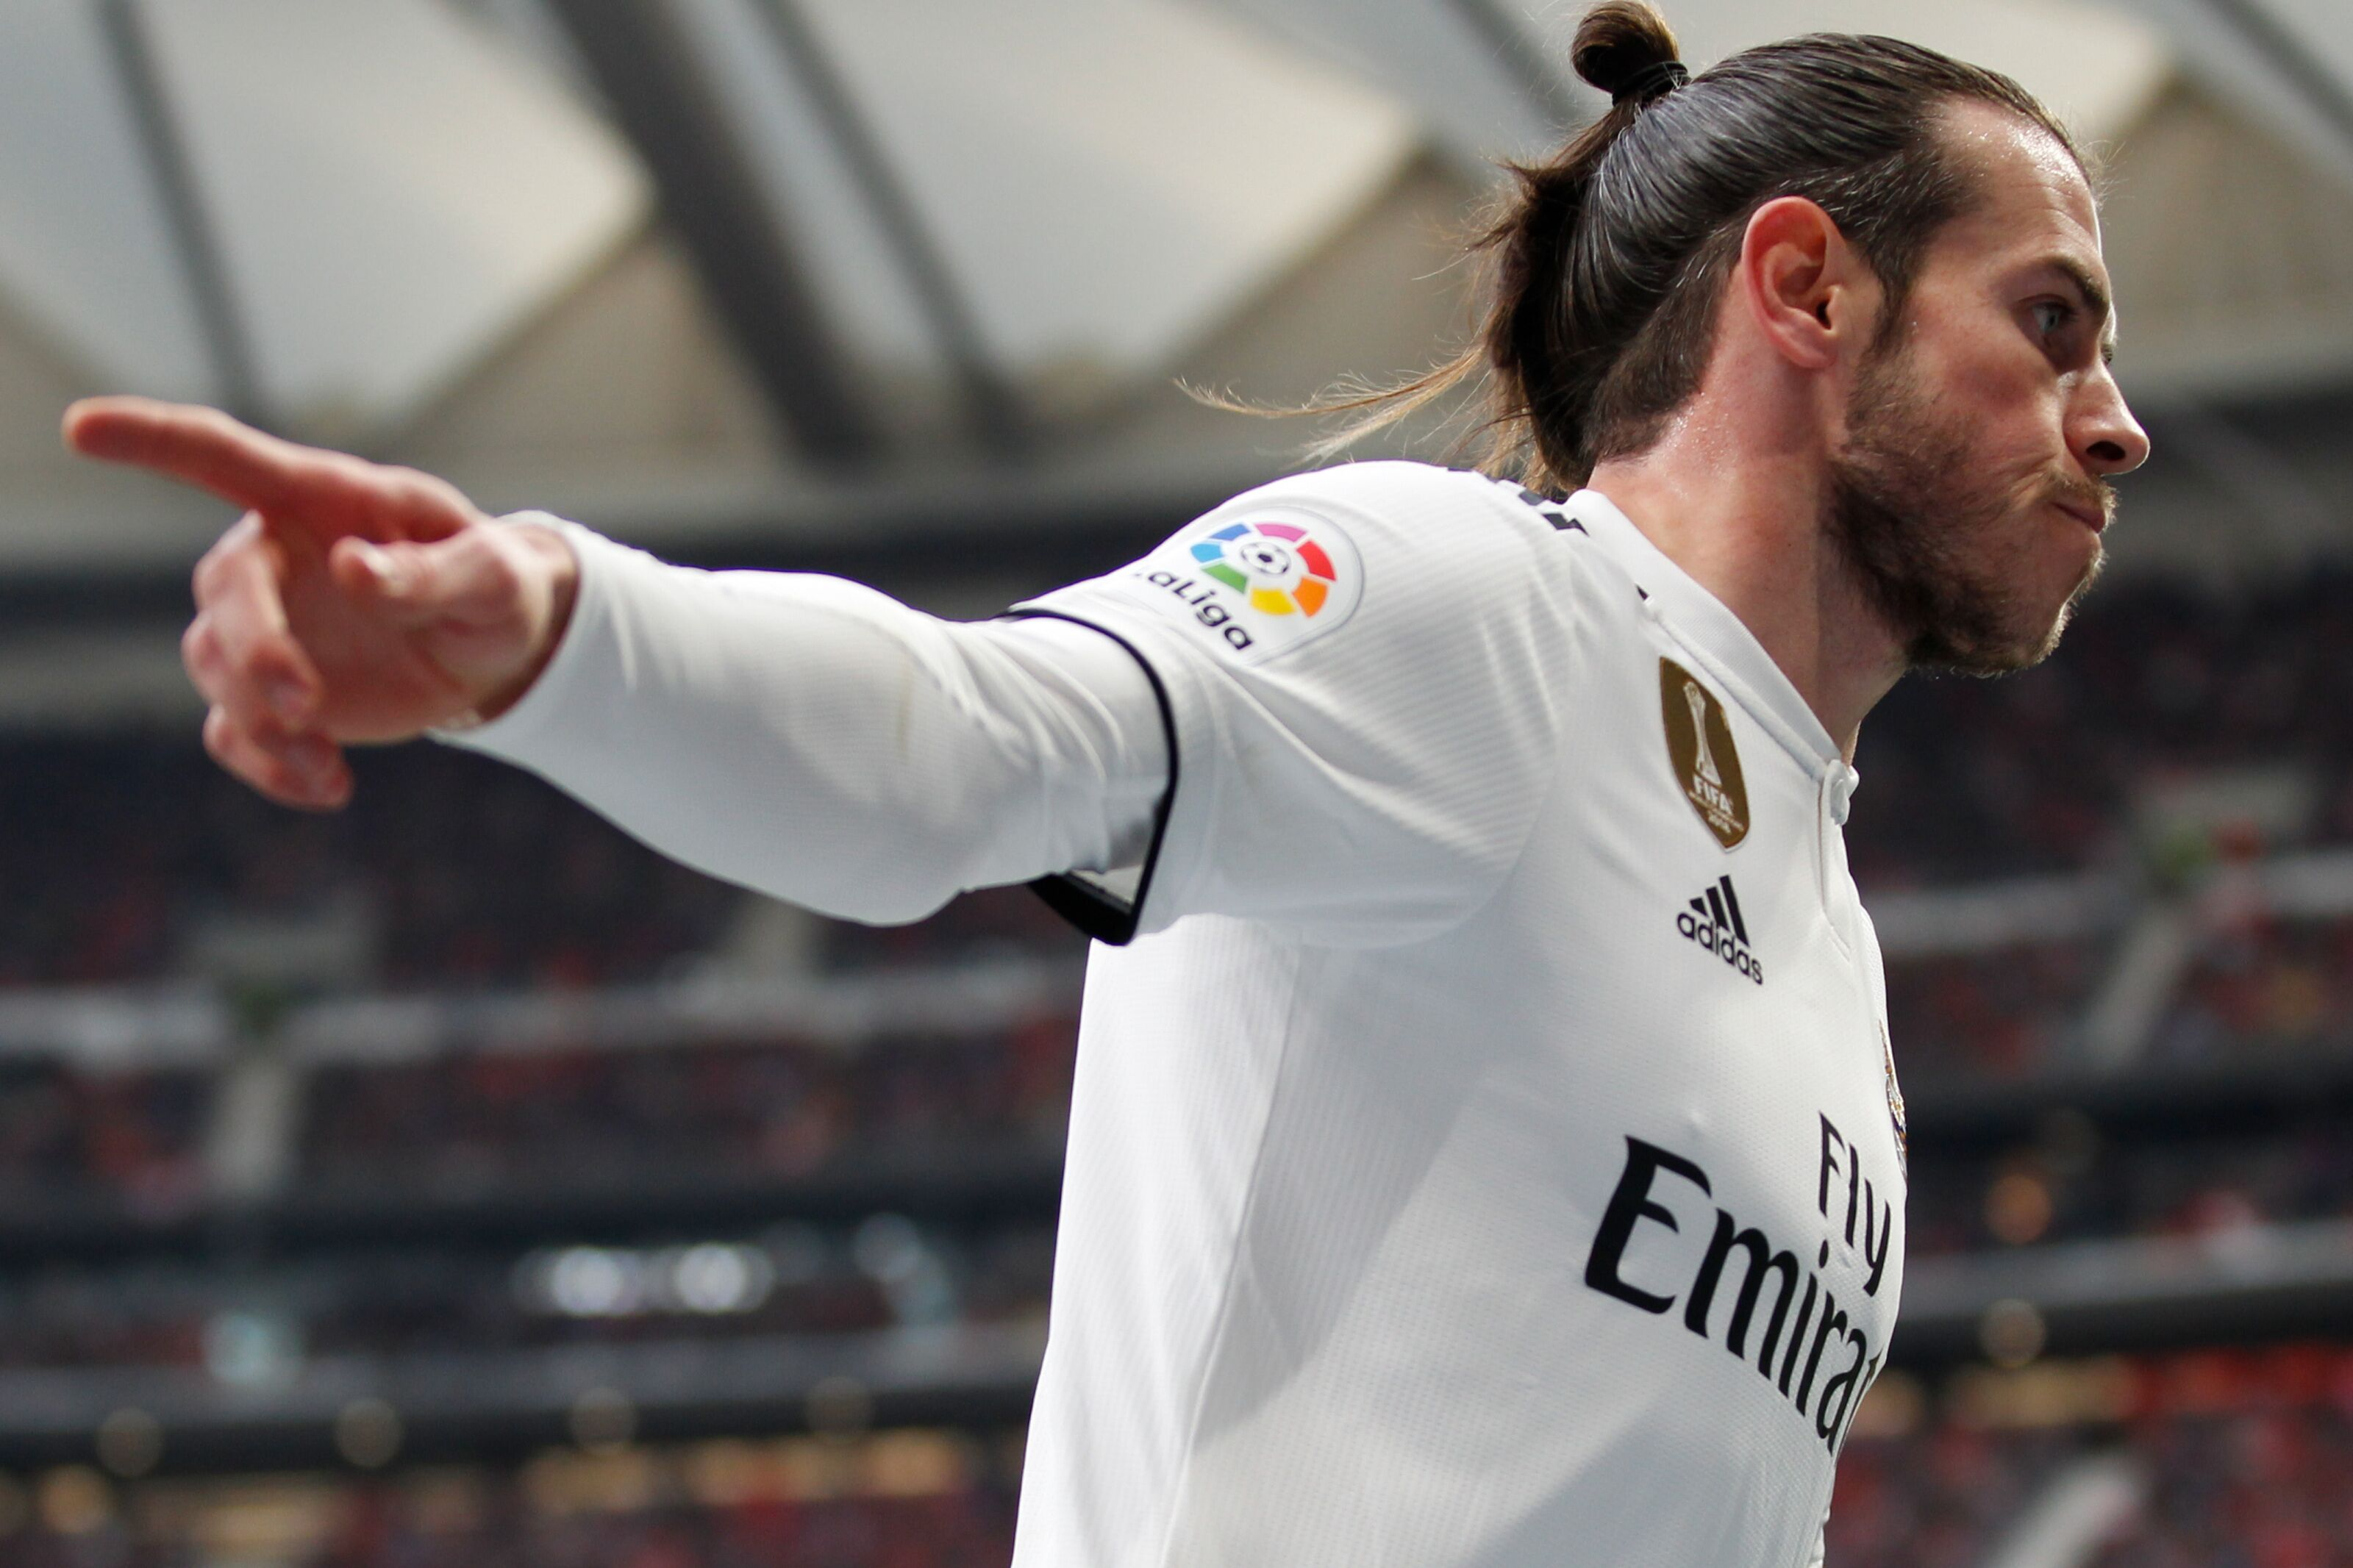 Leaving Real Madrid would be Gareth Bale's least cowardly choice